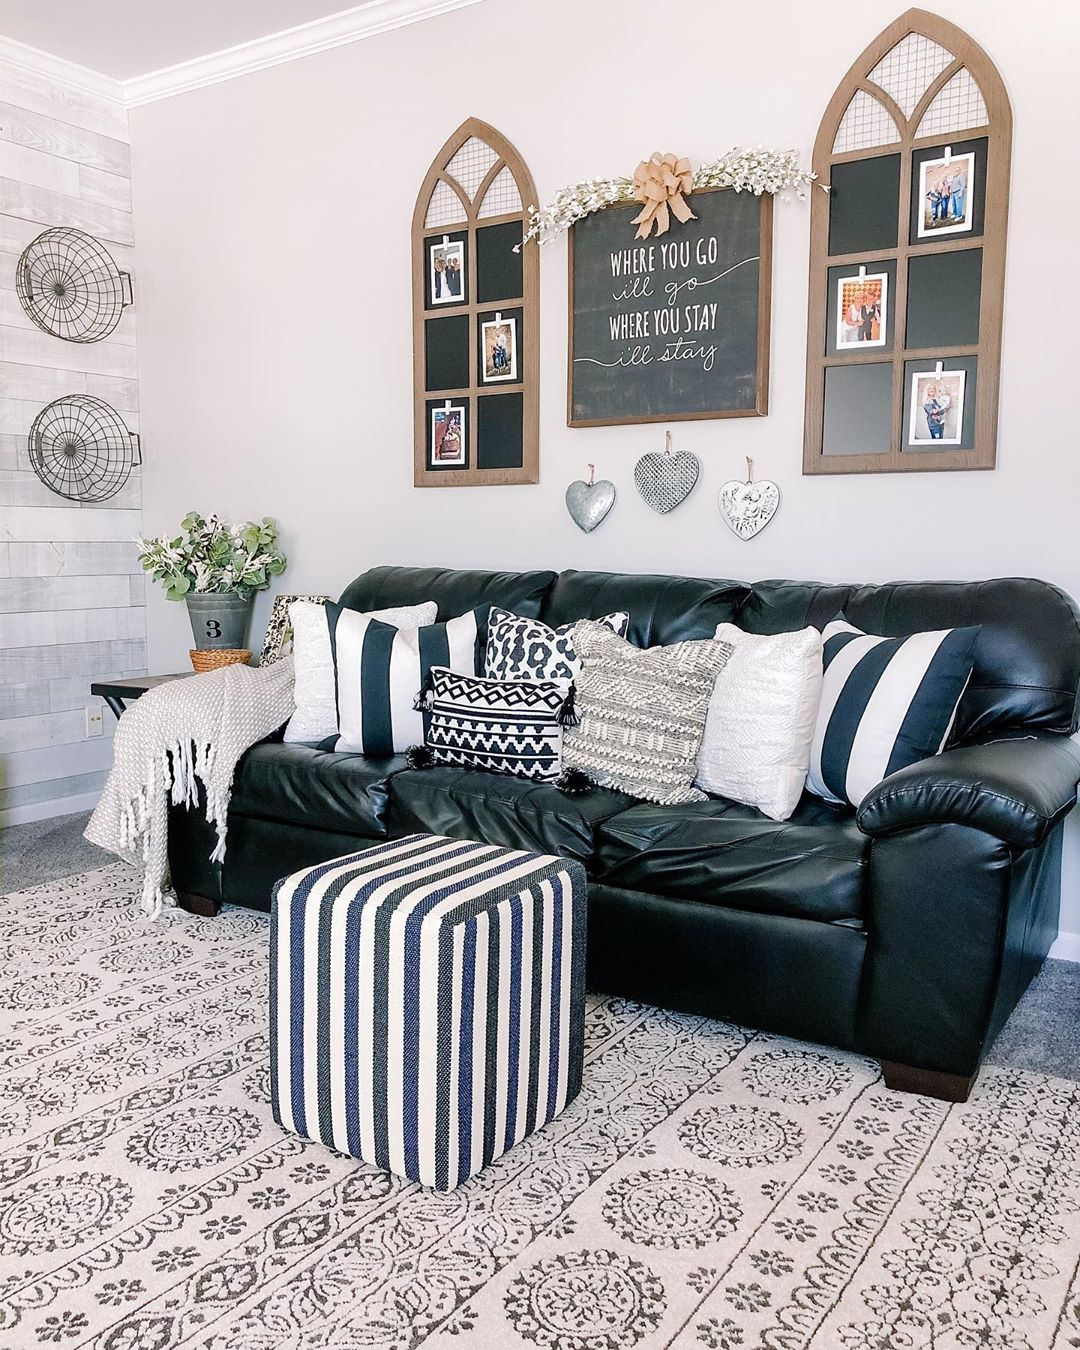 Special 🚨! Did You Know Boutiquerugs N Sponsored - Home Accents